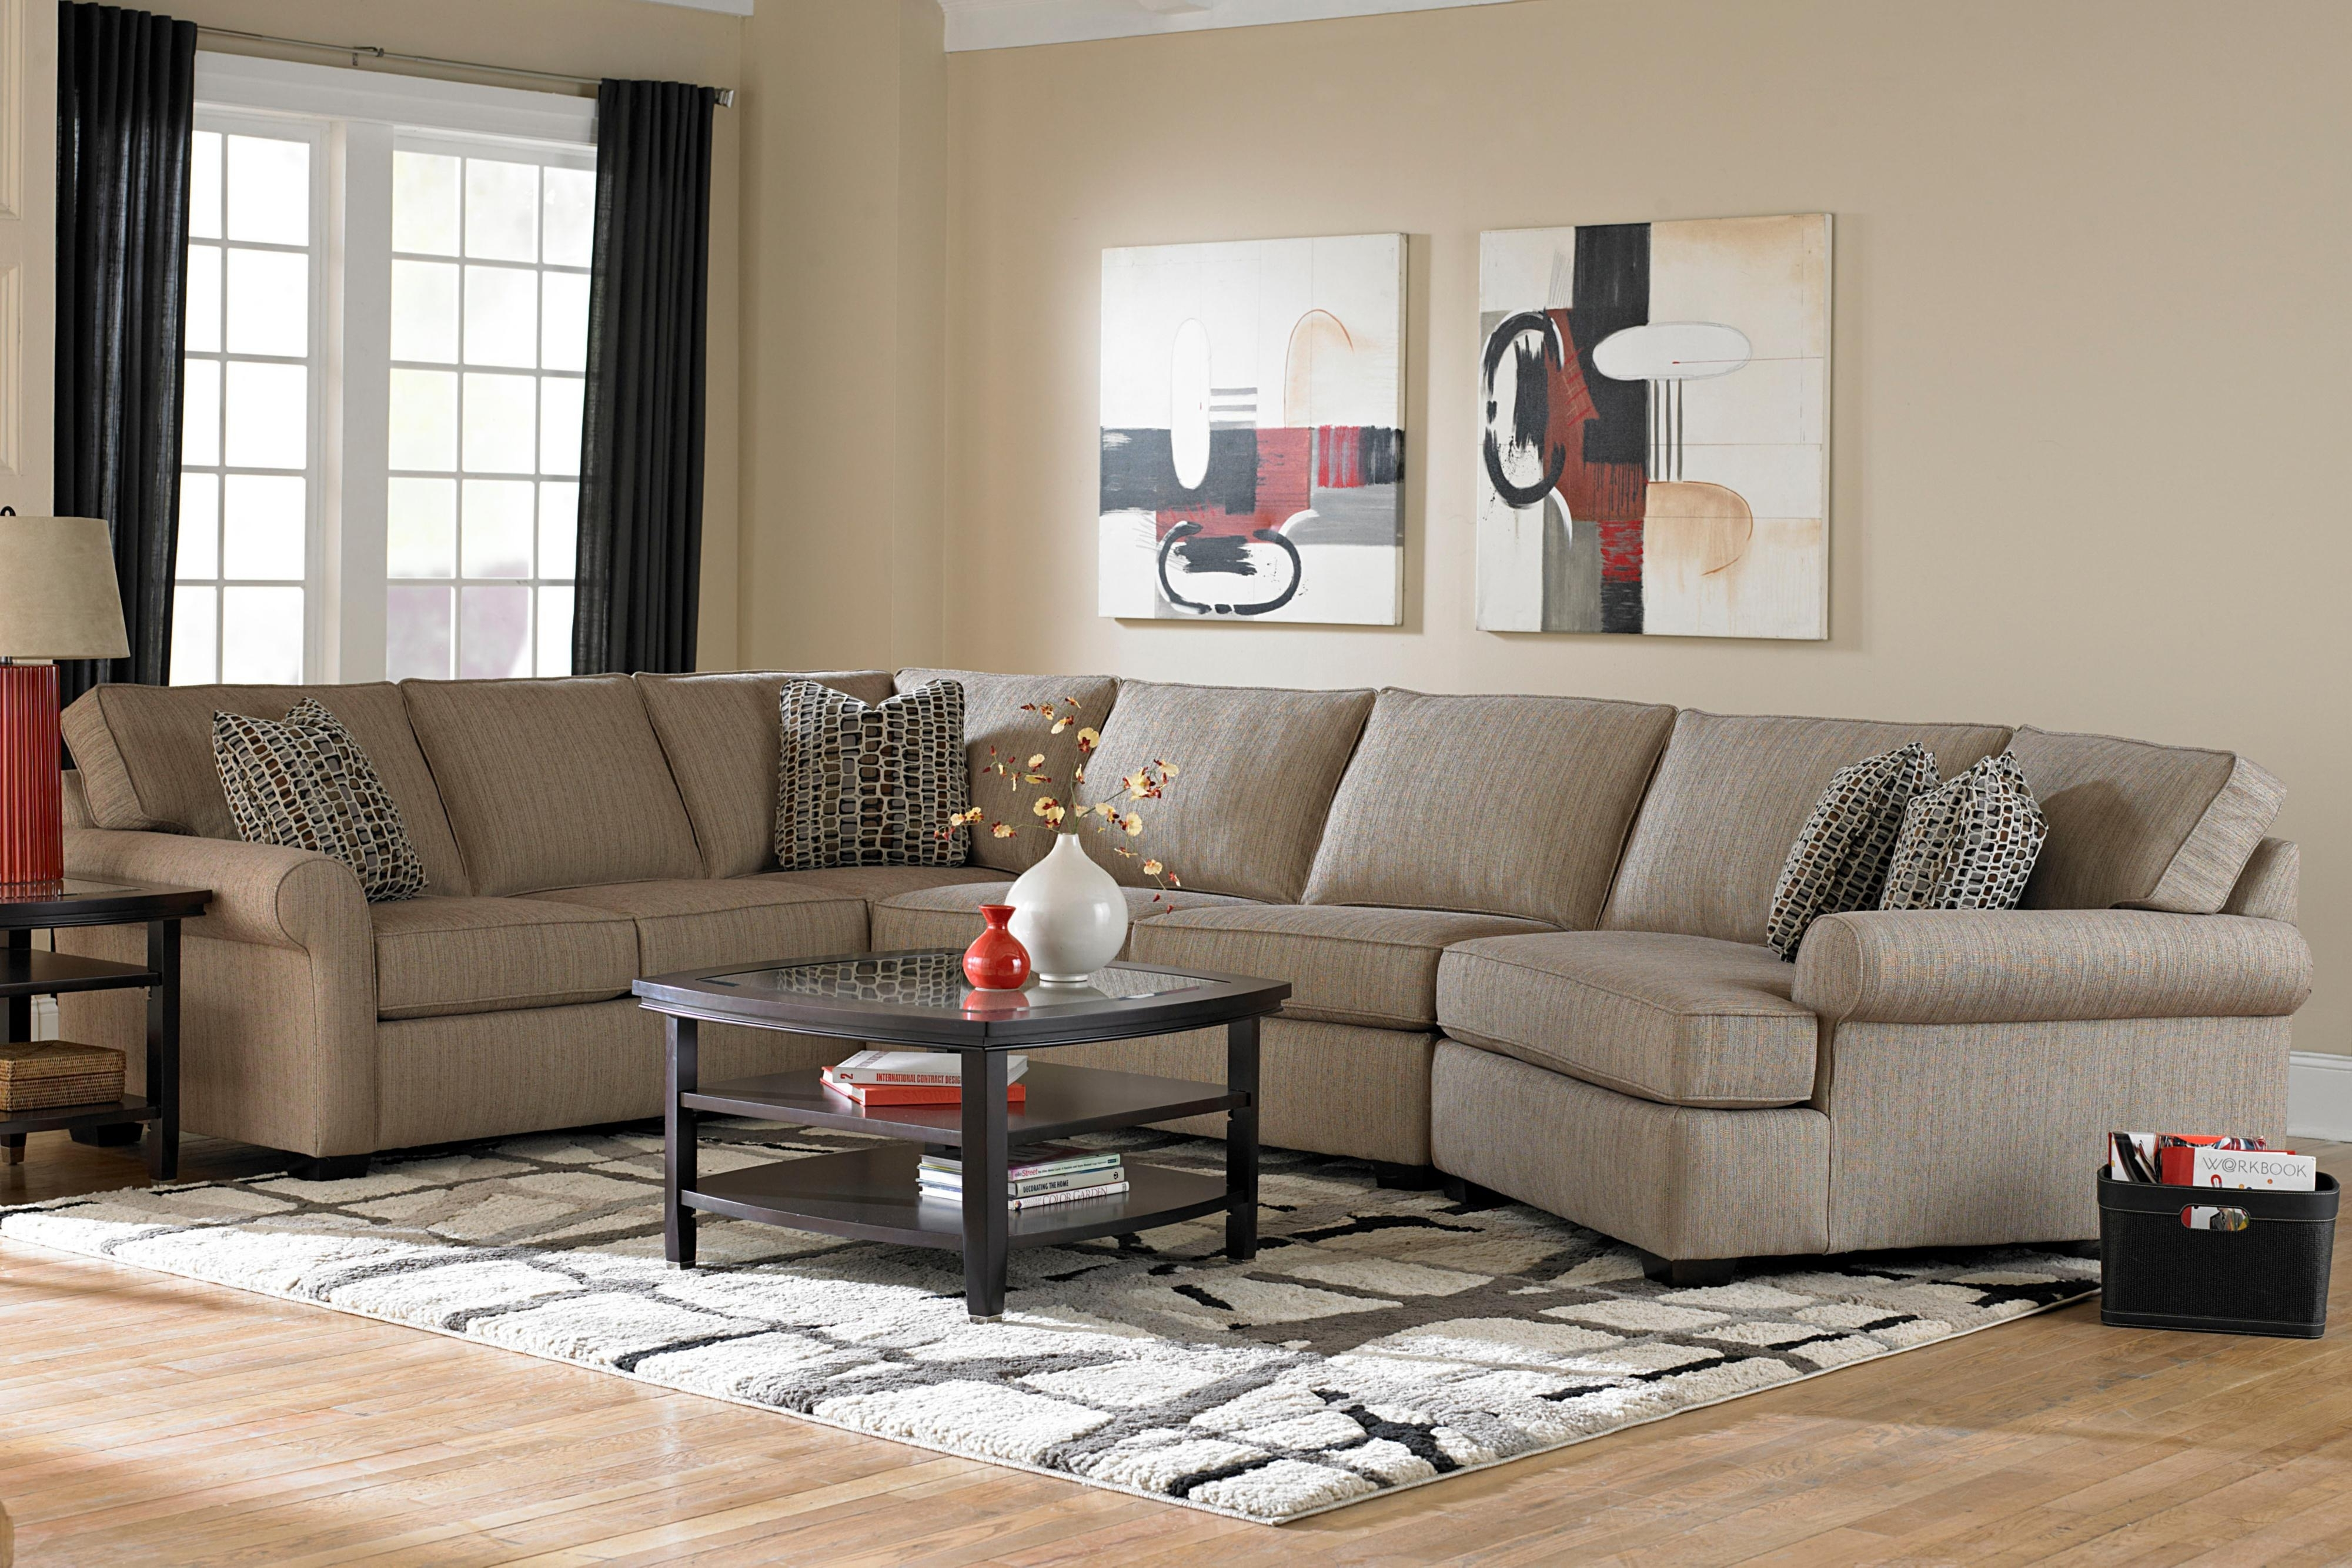 Thomasville Sectional Sofas In Recent Furniture: Thomasville Furniture Nj (View 14 of 20)